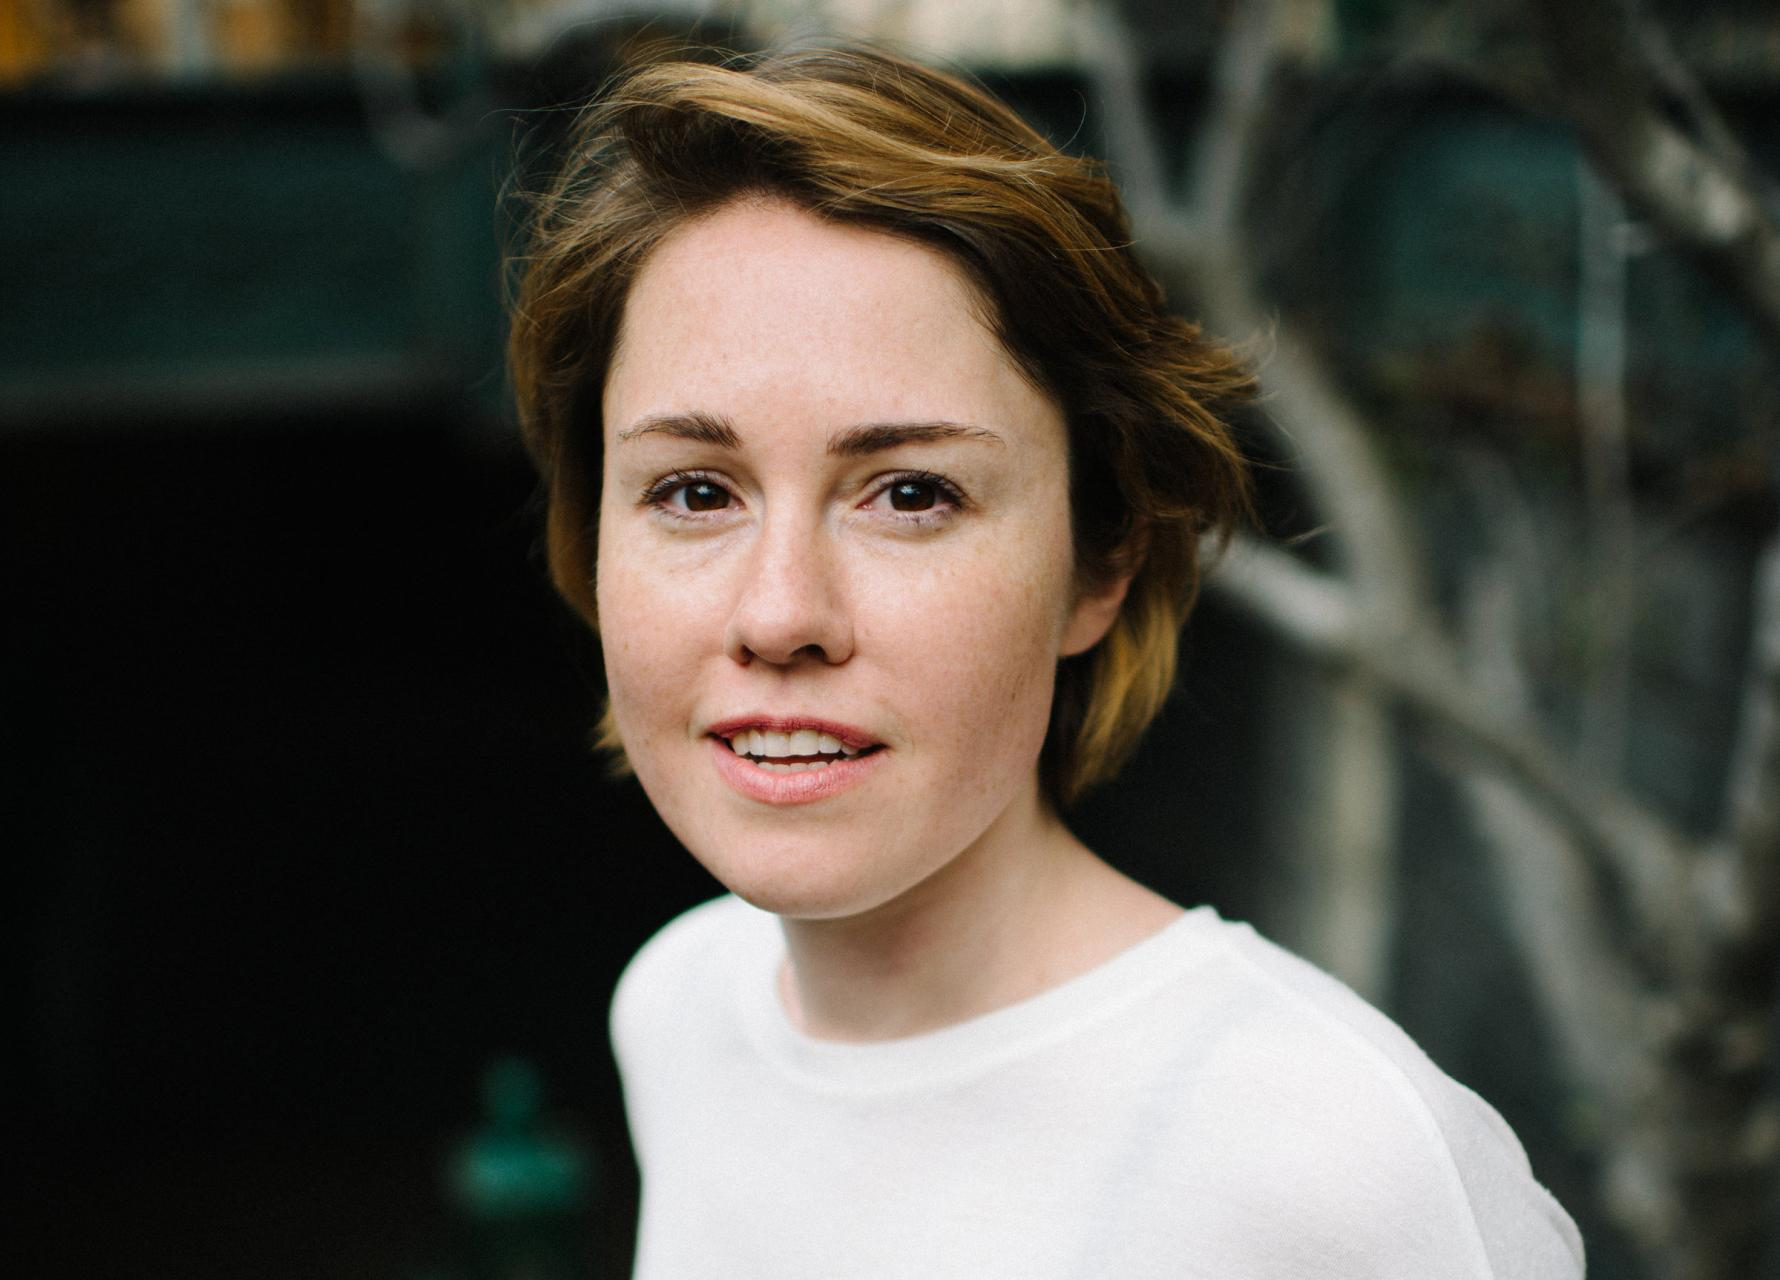 Composer, Vocalist, Violinist and Producer Caroline Shaw is the youngest recipient of the Pulitzer Prize in Music.